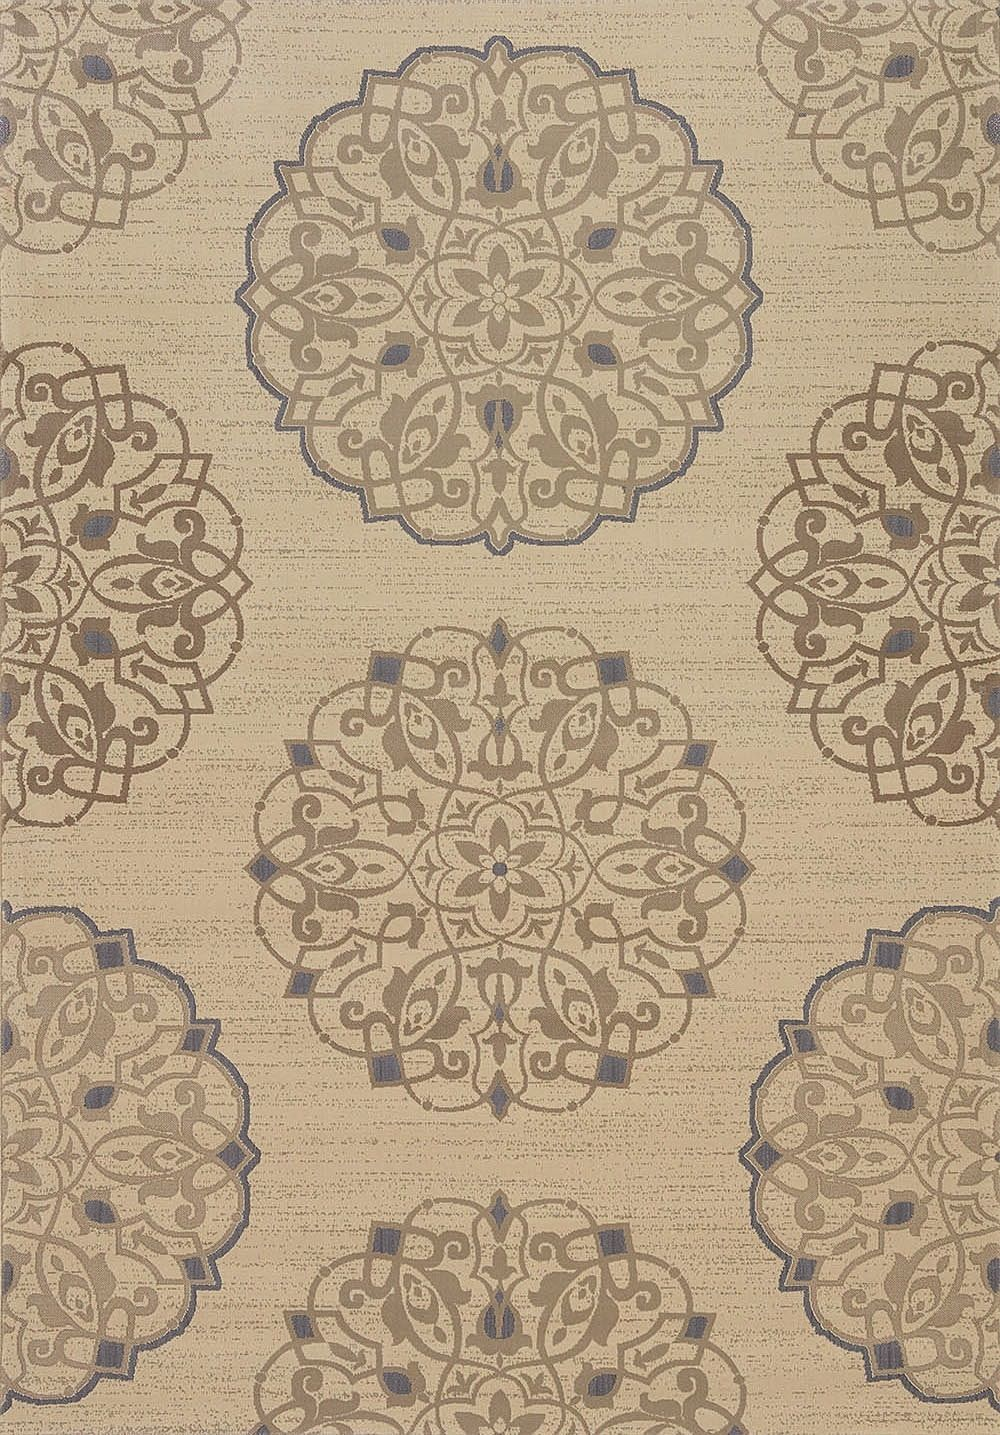 united weavers subtleties country & floral area rug collection